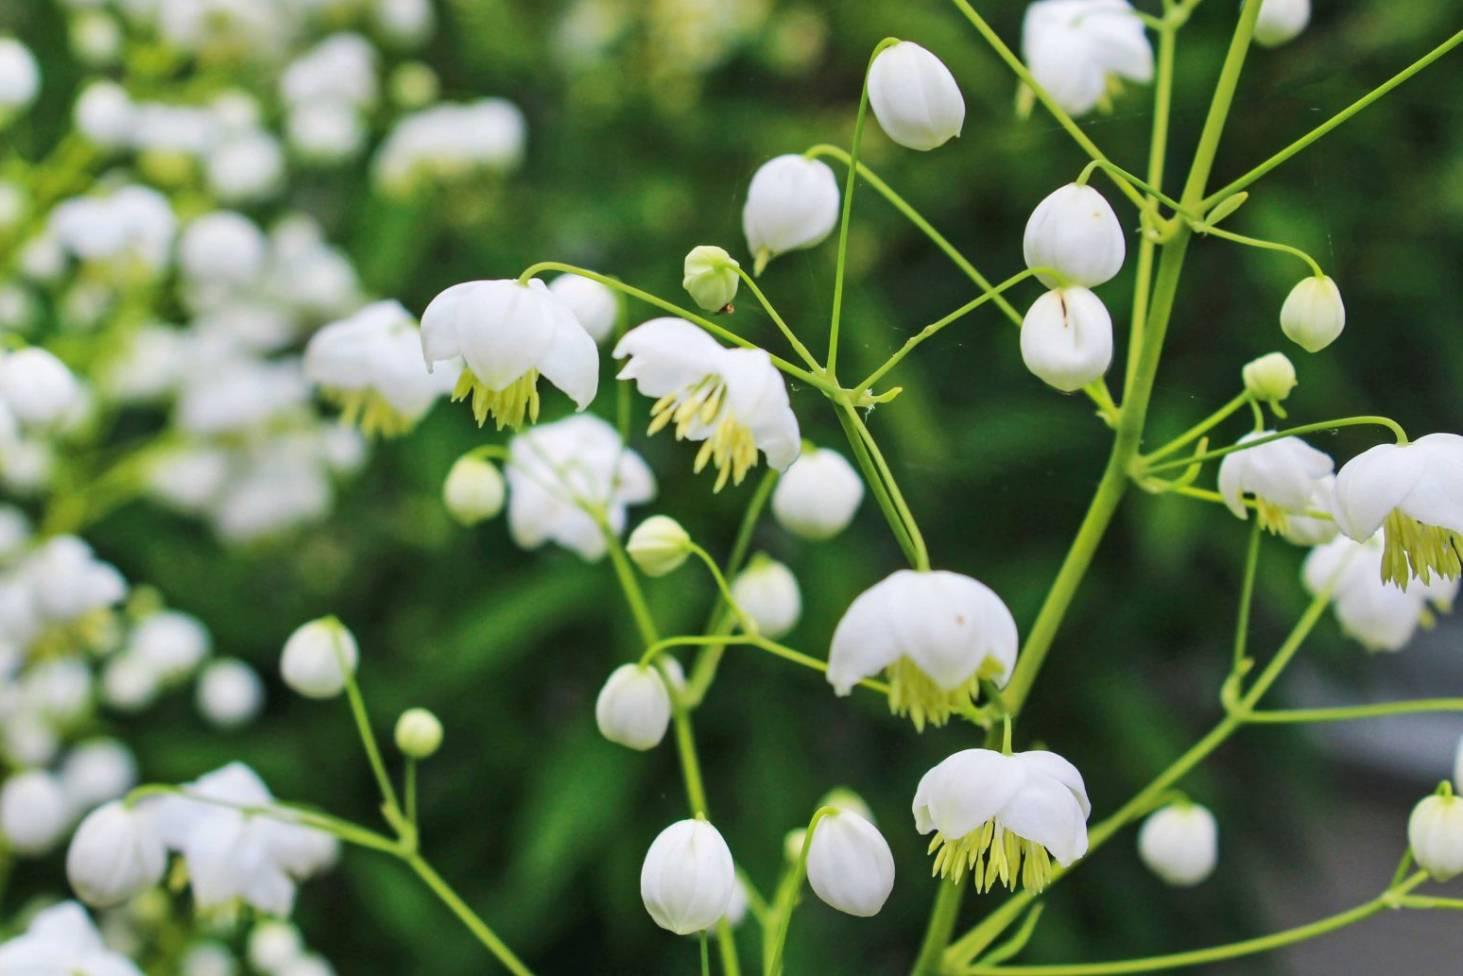 white flowers: a cool look for hot summer gardens | stuff.co.nz